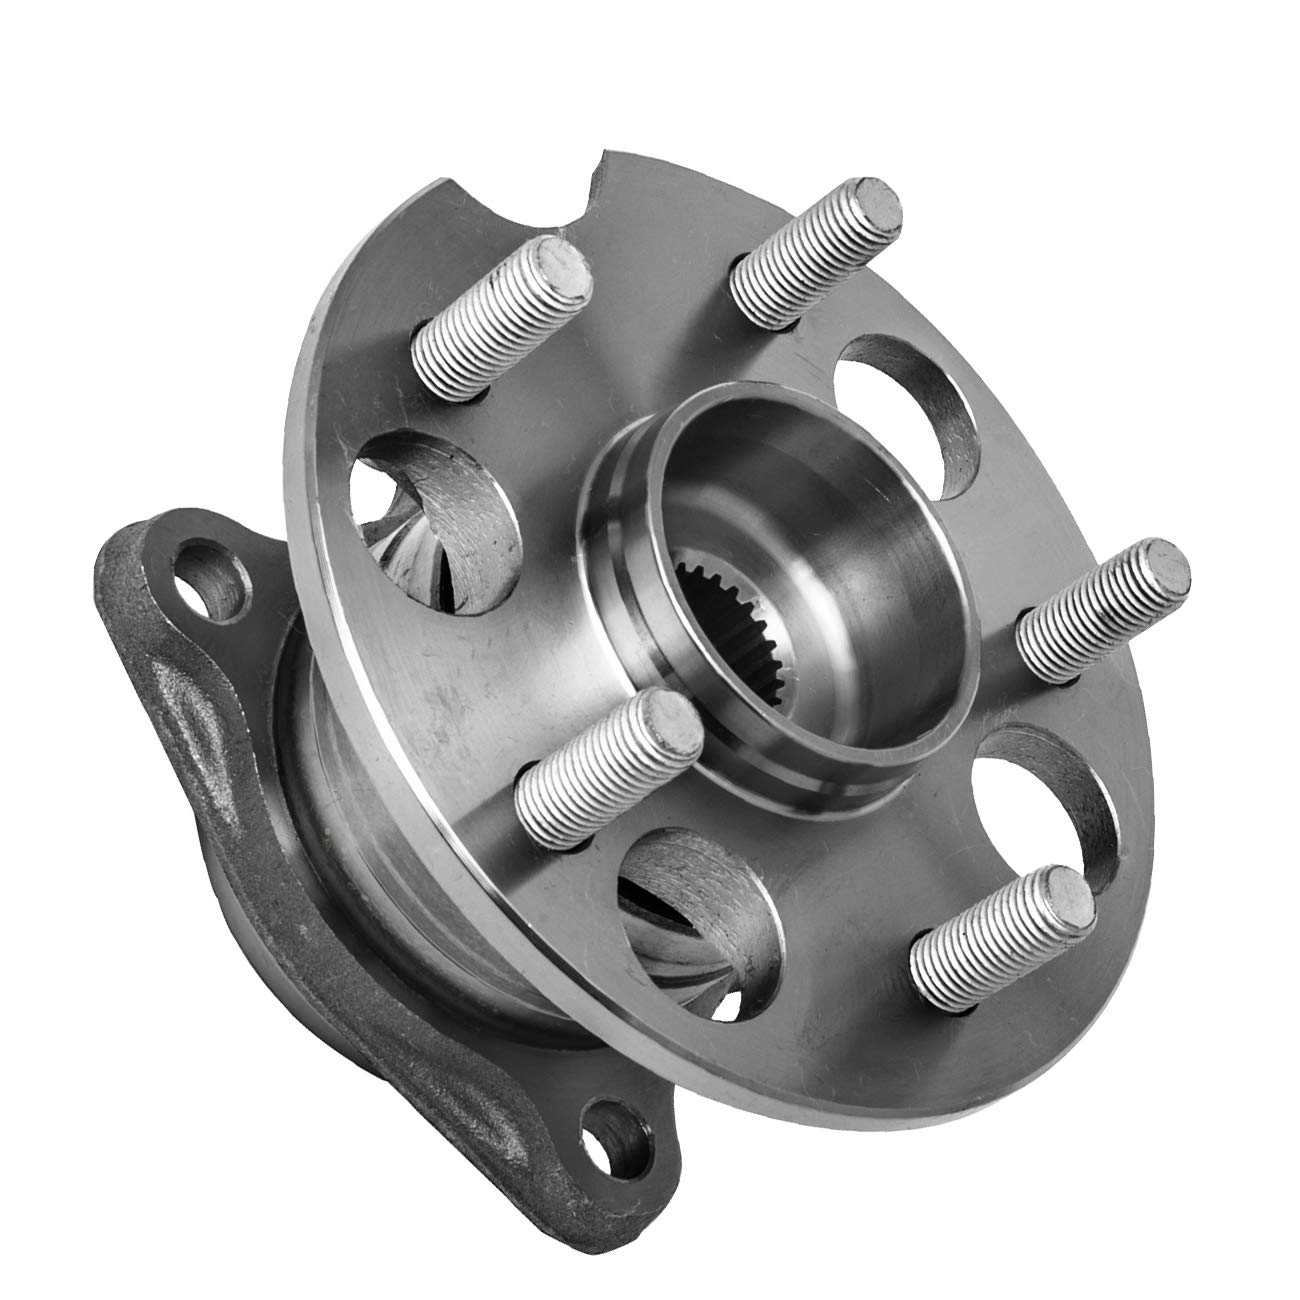 4X4 4WD//AWD 5 Lug W//ABS TUCAREST 512284 Rear Wheel Bearing and Hub Assembly Compatible 2004-2006 Lexus RX330 07-09 RX350 06-08 RX400h 04-13 Toyota Highlander 09-16 Venza